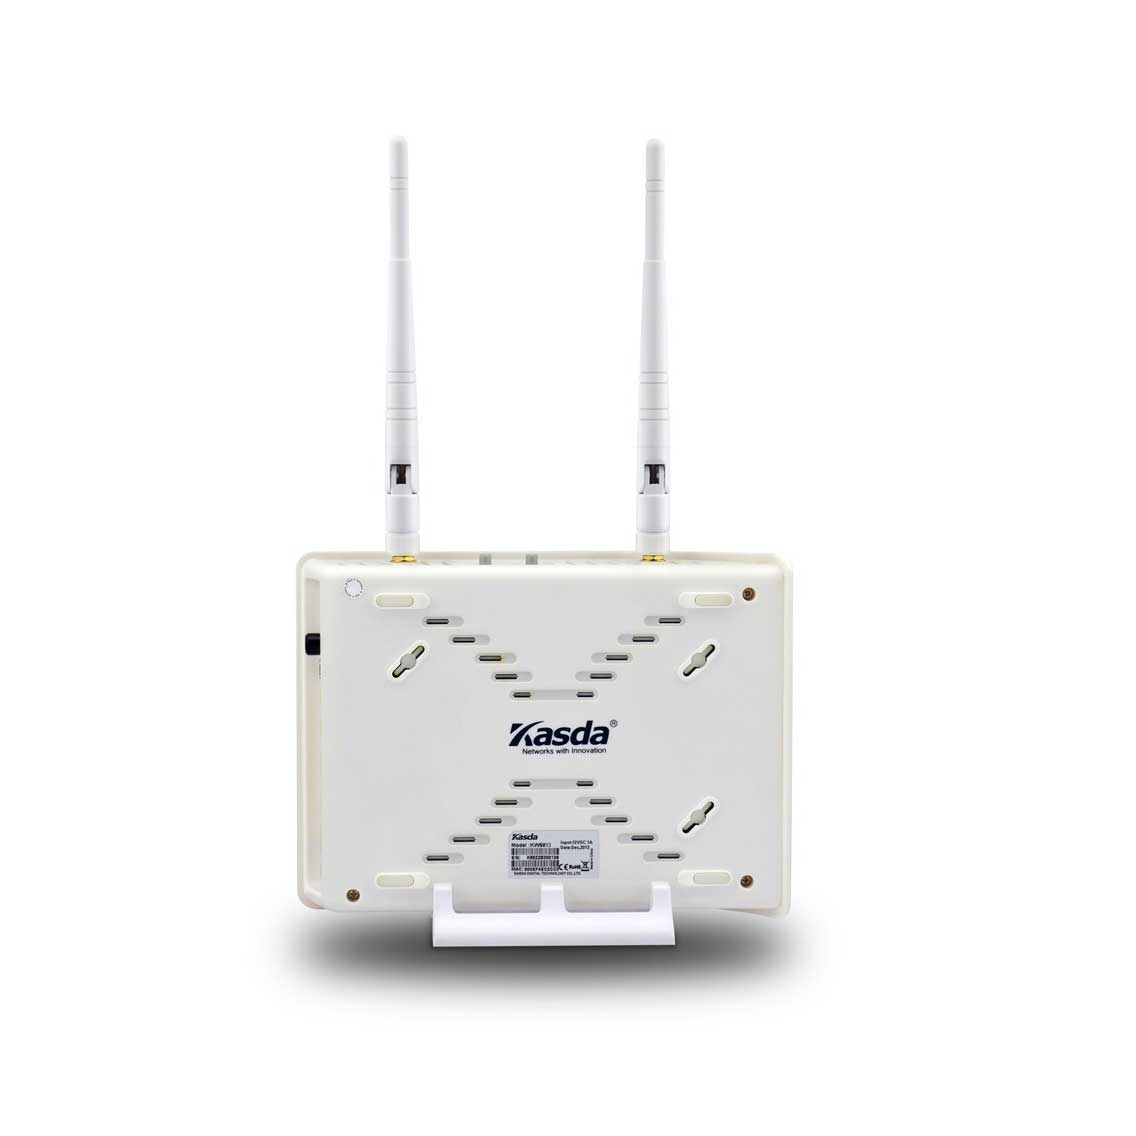 Kasda Wireless ADSL2+ Modem Router KW5813